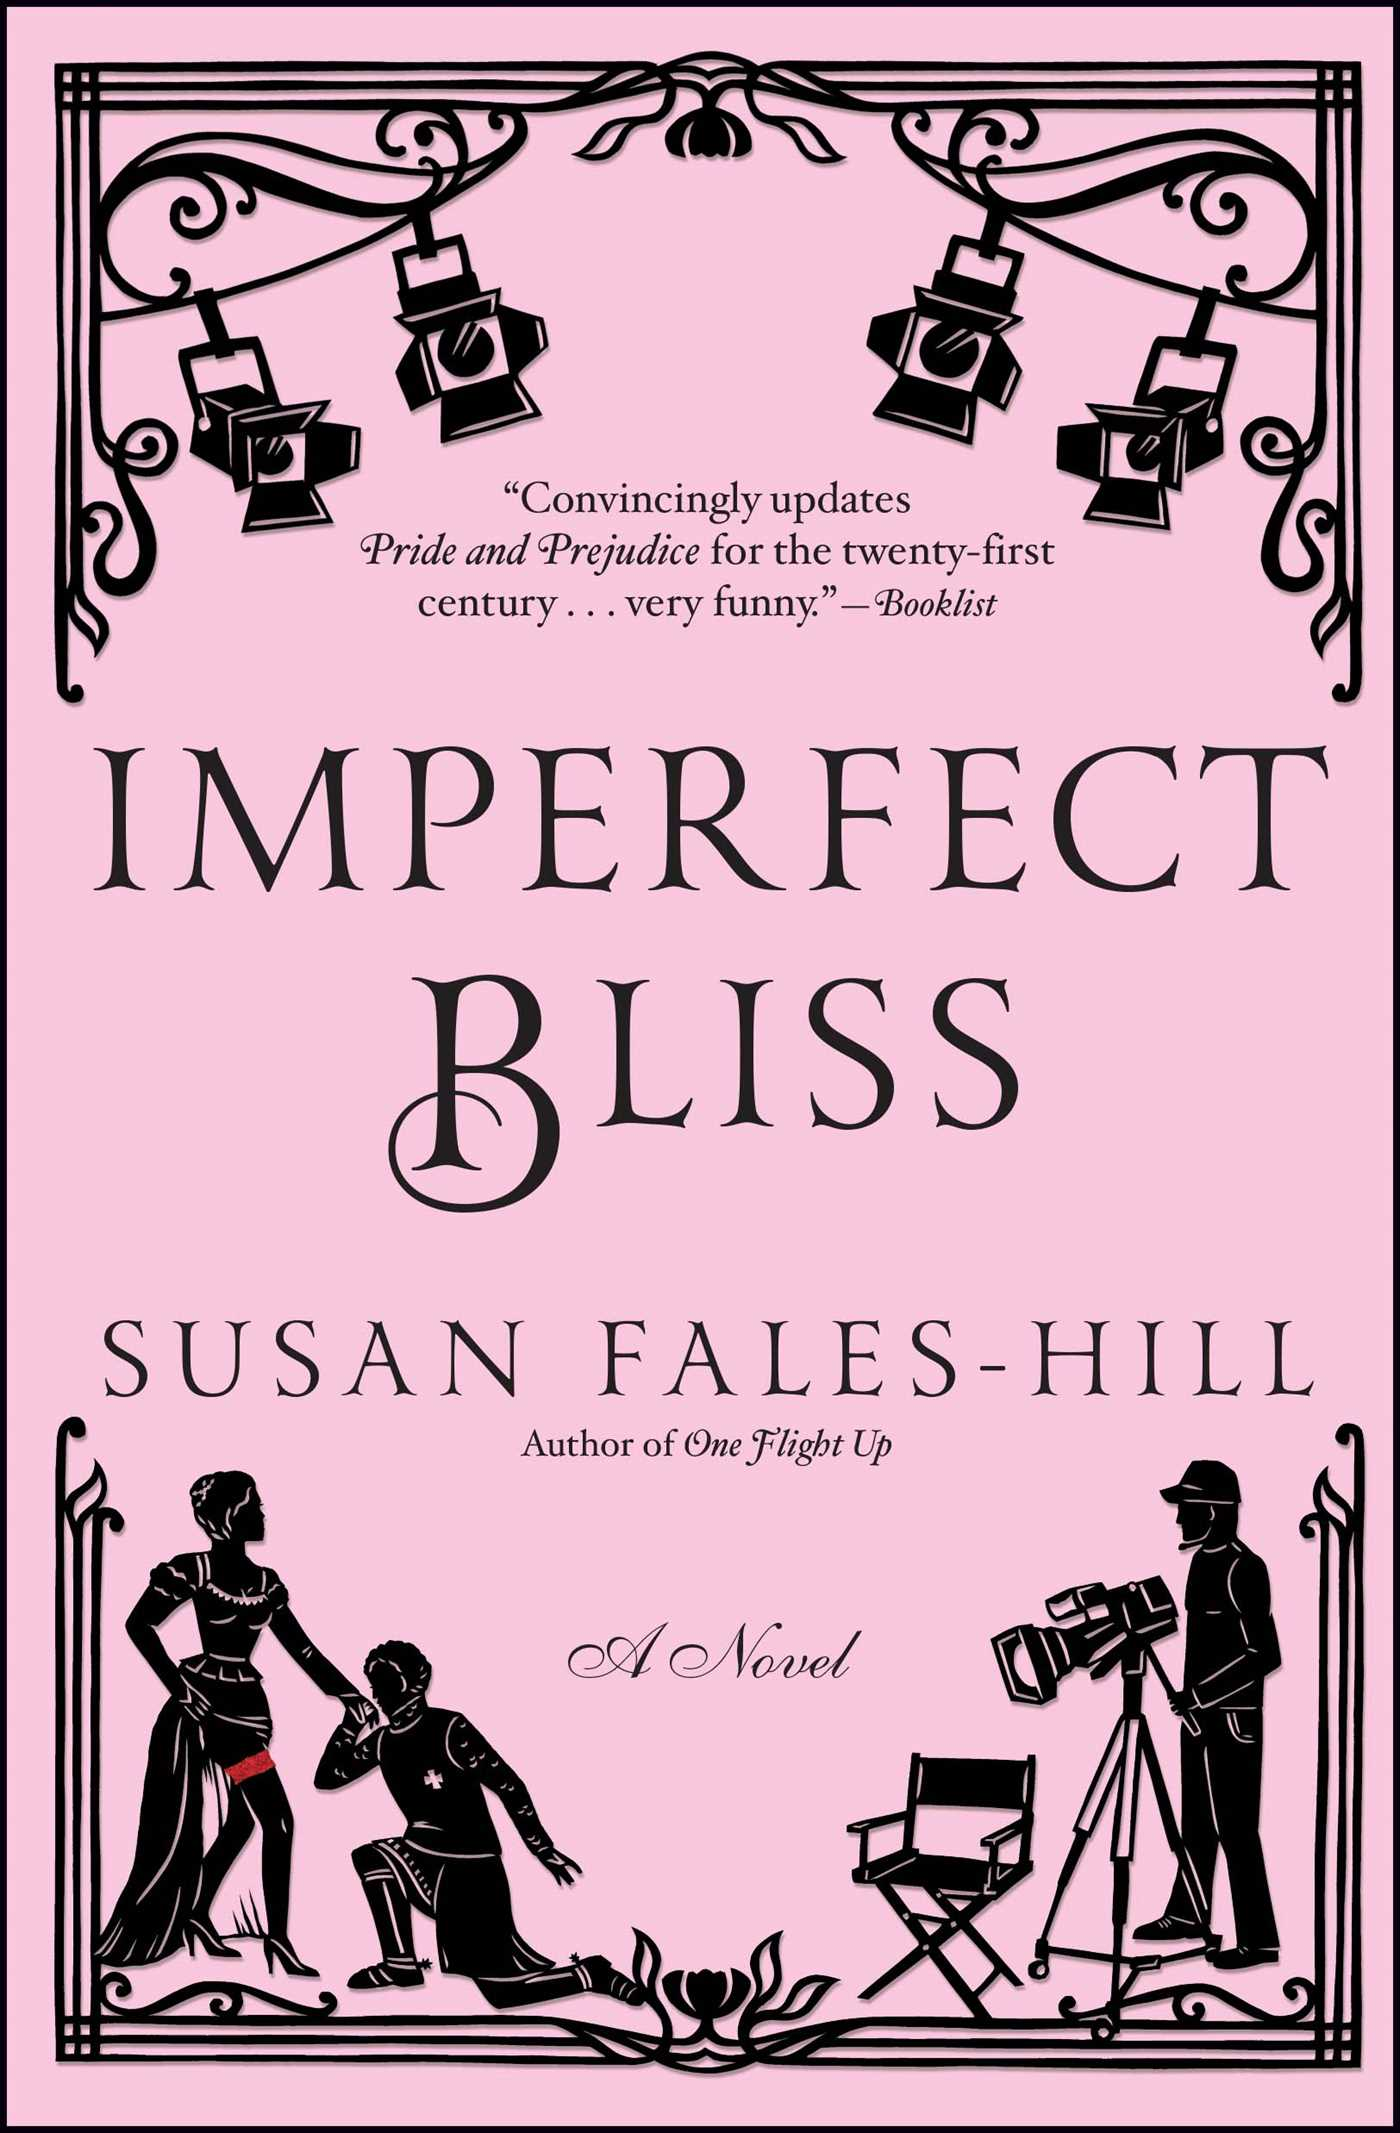 Imperfect bliss 9781451623833 hr